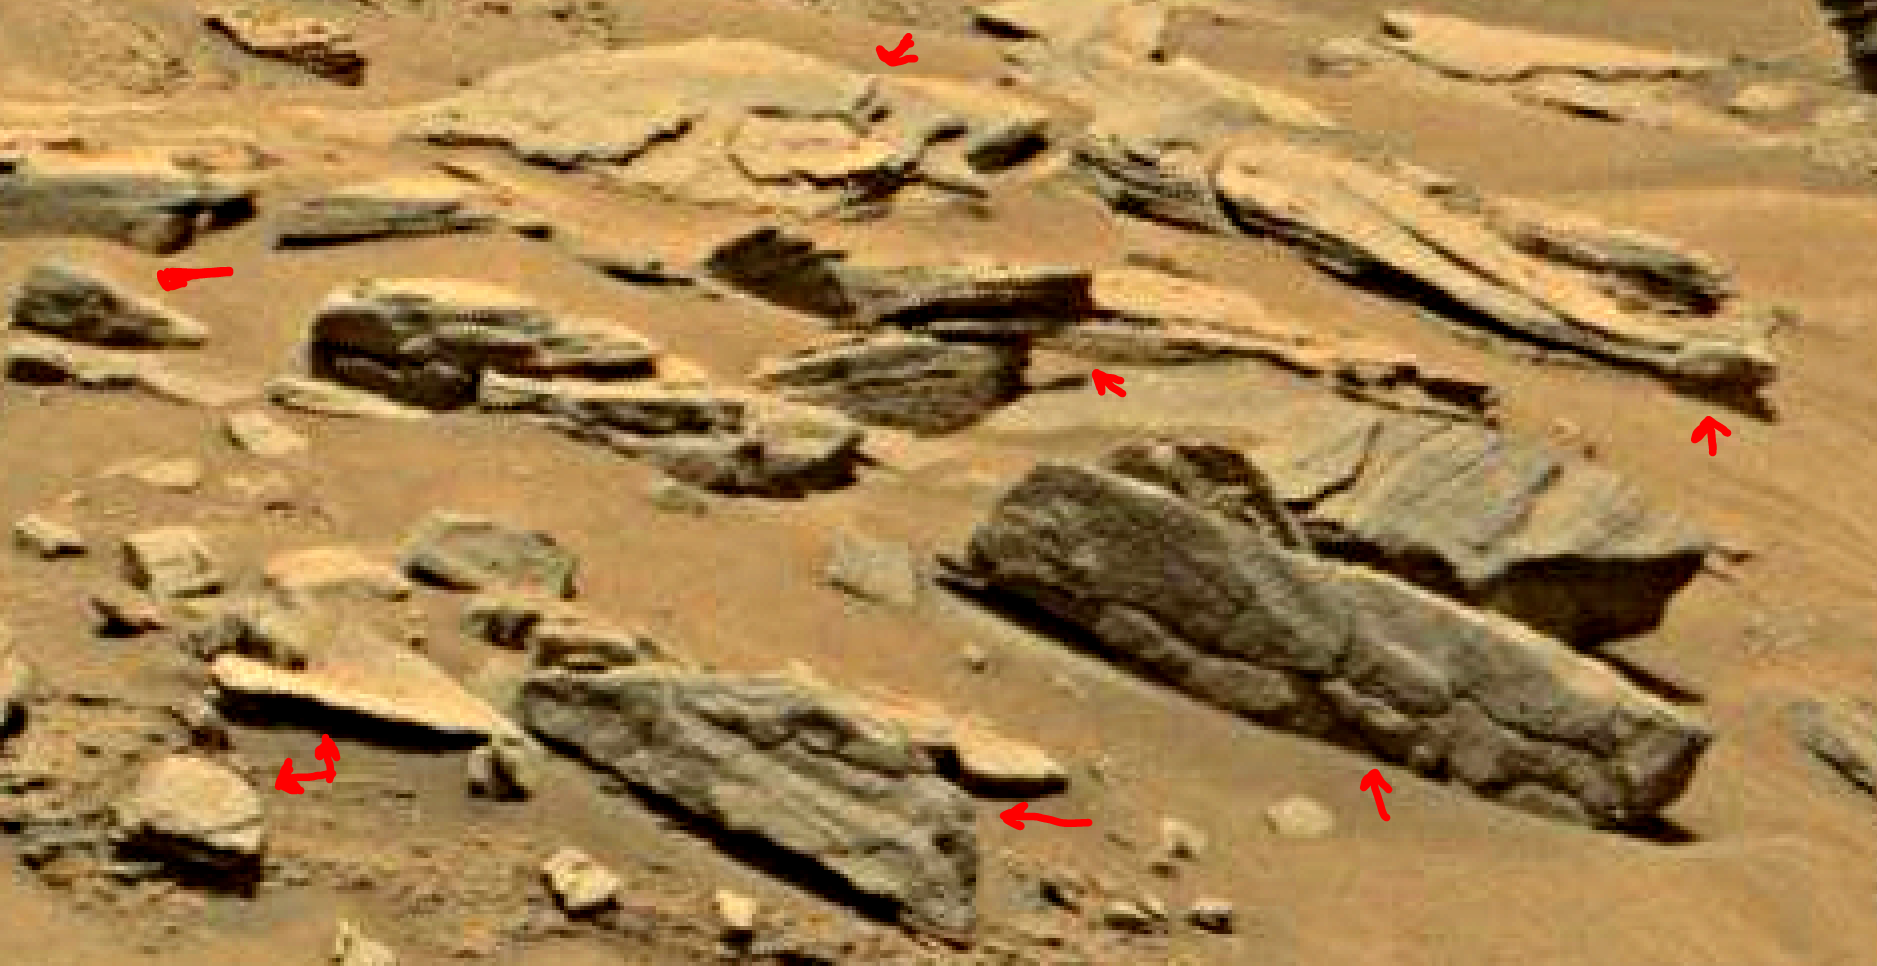 mars sol 1353 anomaly-artifacts 31a was life on mars